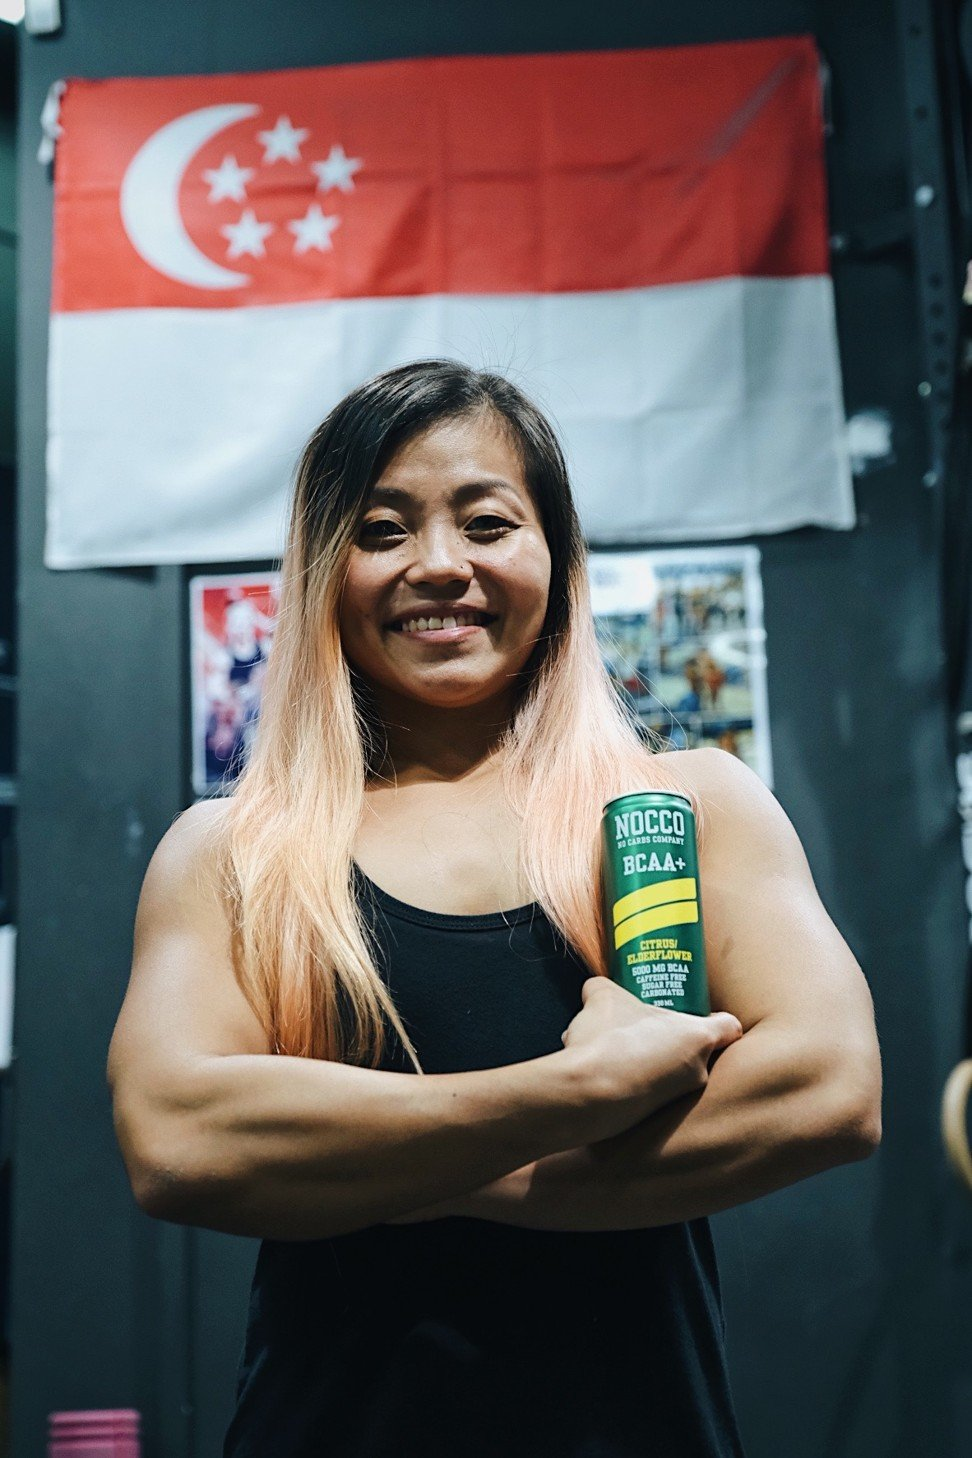 Landy Eng said she hopes to inspire more women to buff up, get off the treadmills and take their BCAAs.